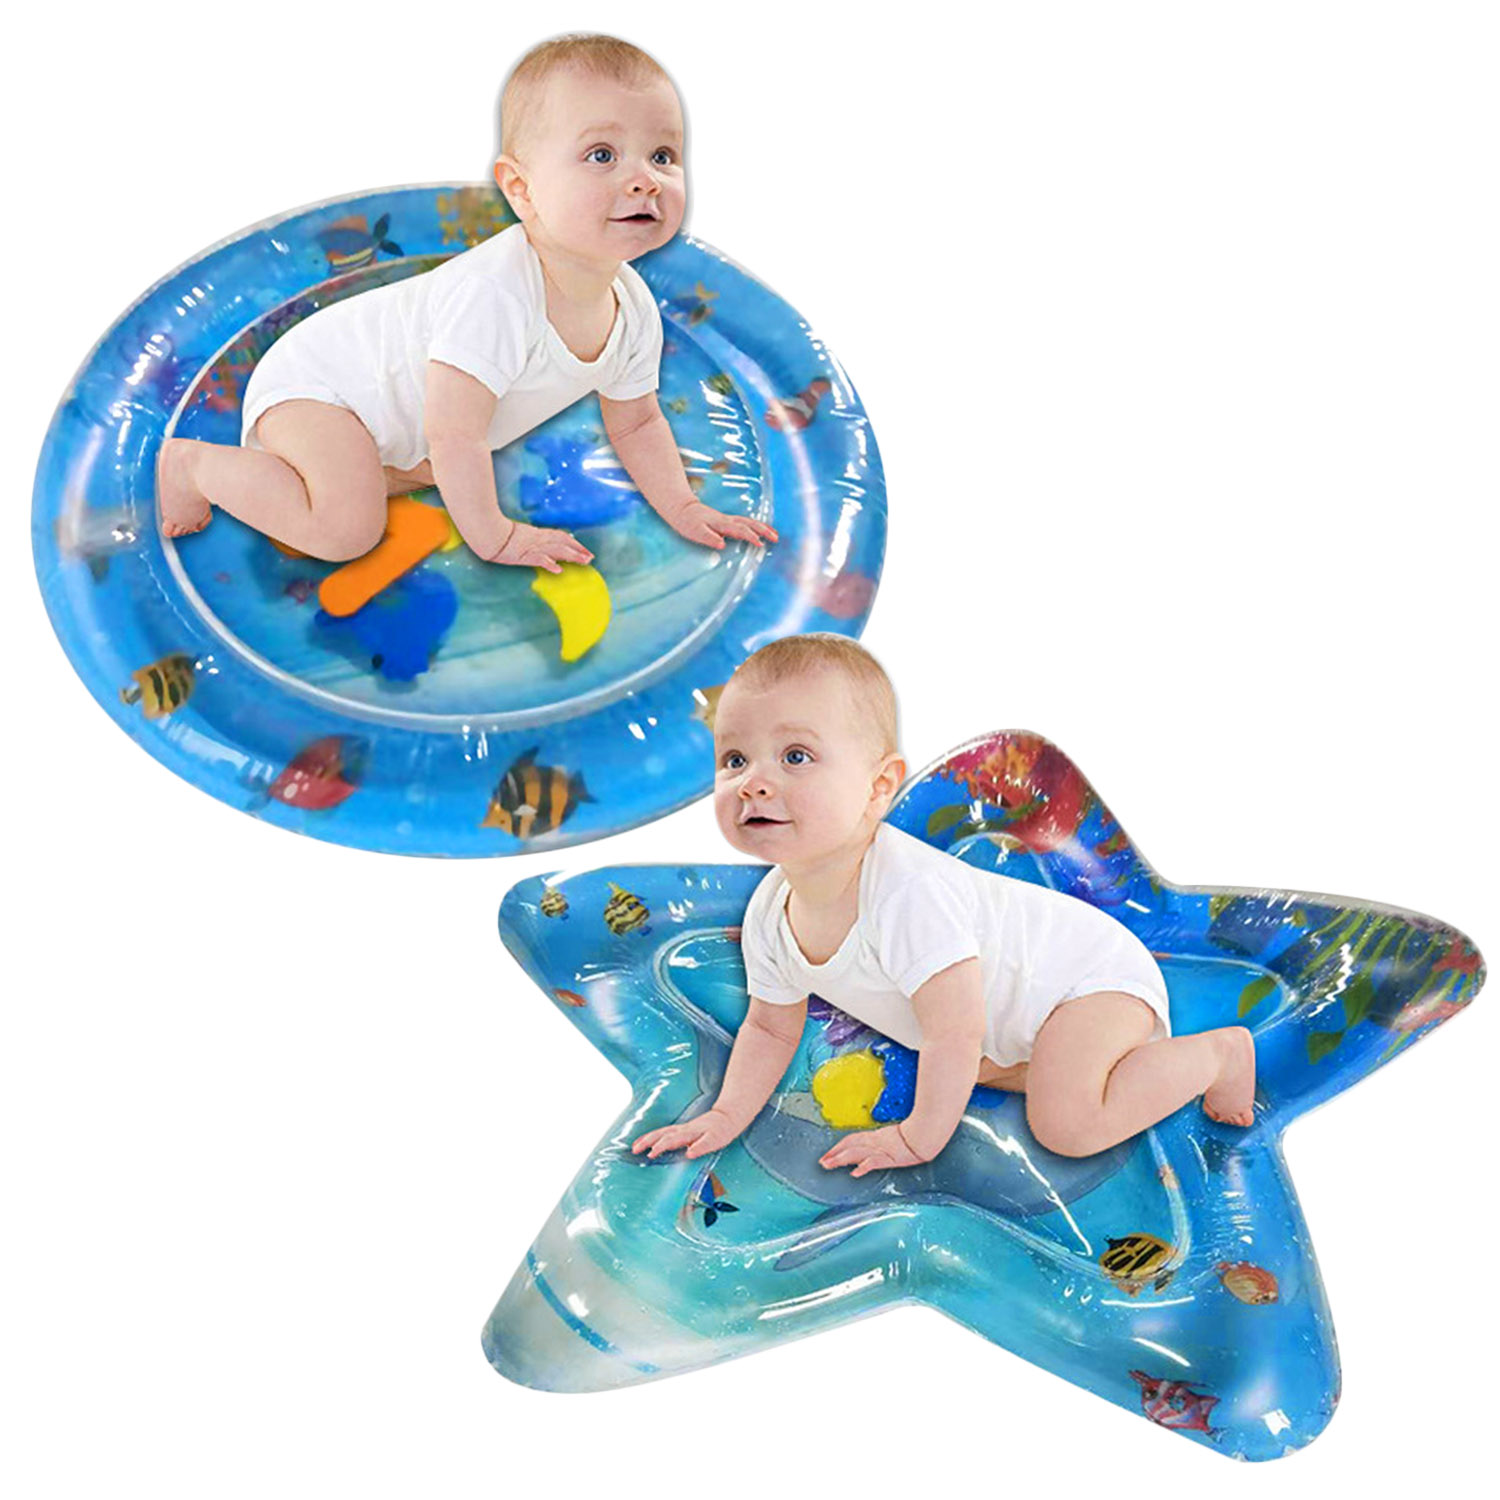 Baby Crawling Water Mats Inflatable Tummy Time Water Playmat Mat Fun Activity Play Center For Kids Play Pad Swimming Beach Games